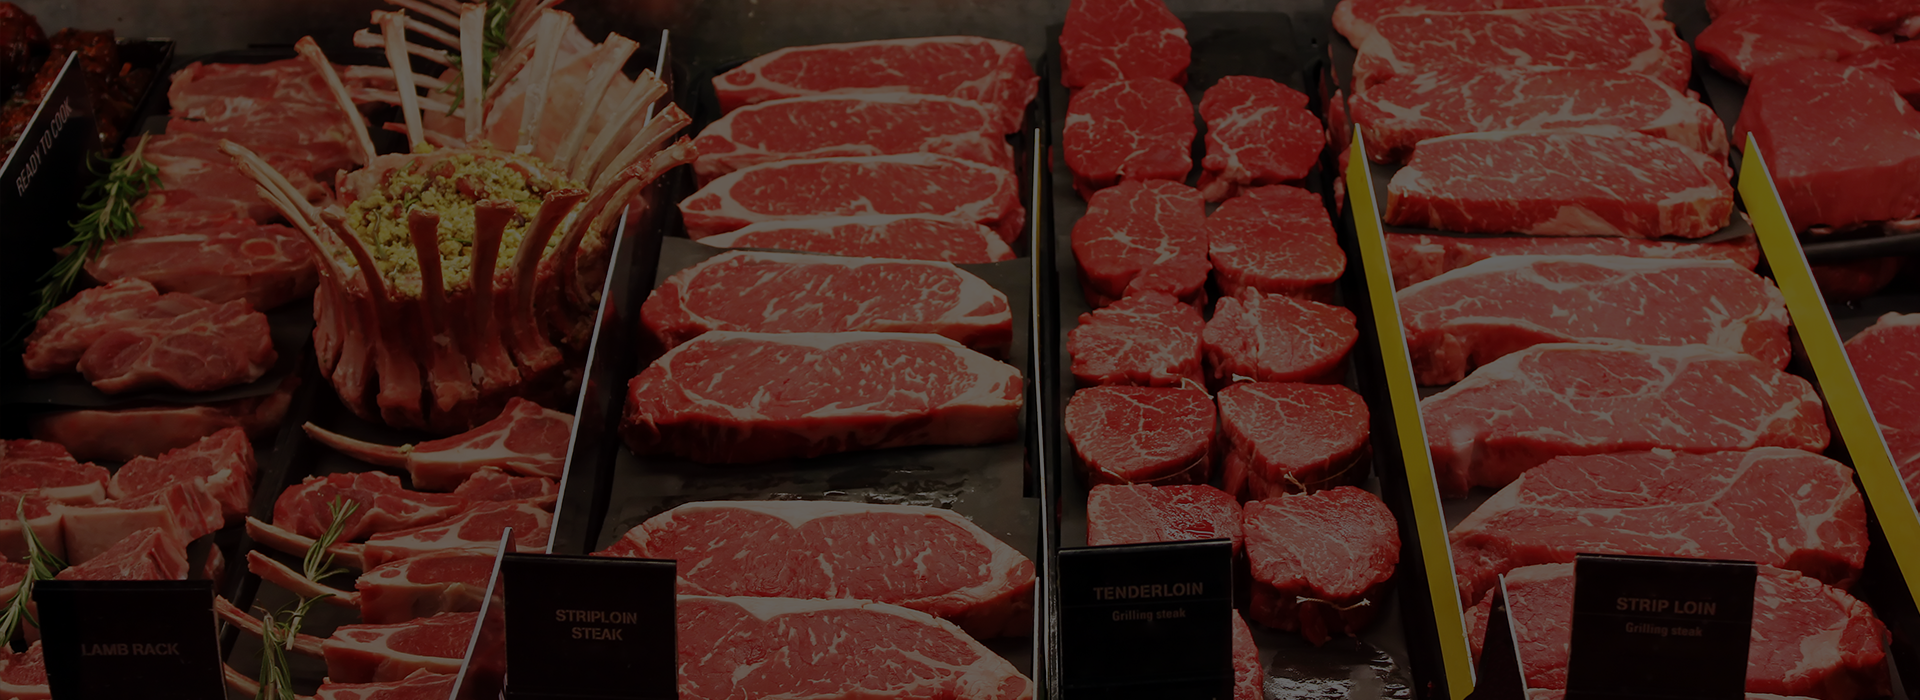 Behrmanns-Meat-and-Processing-Wholesale-and-Retail